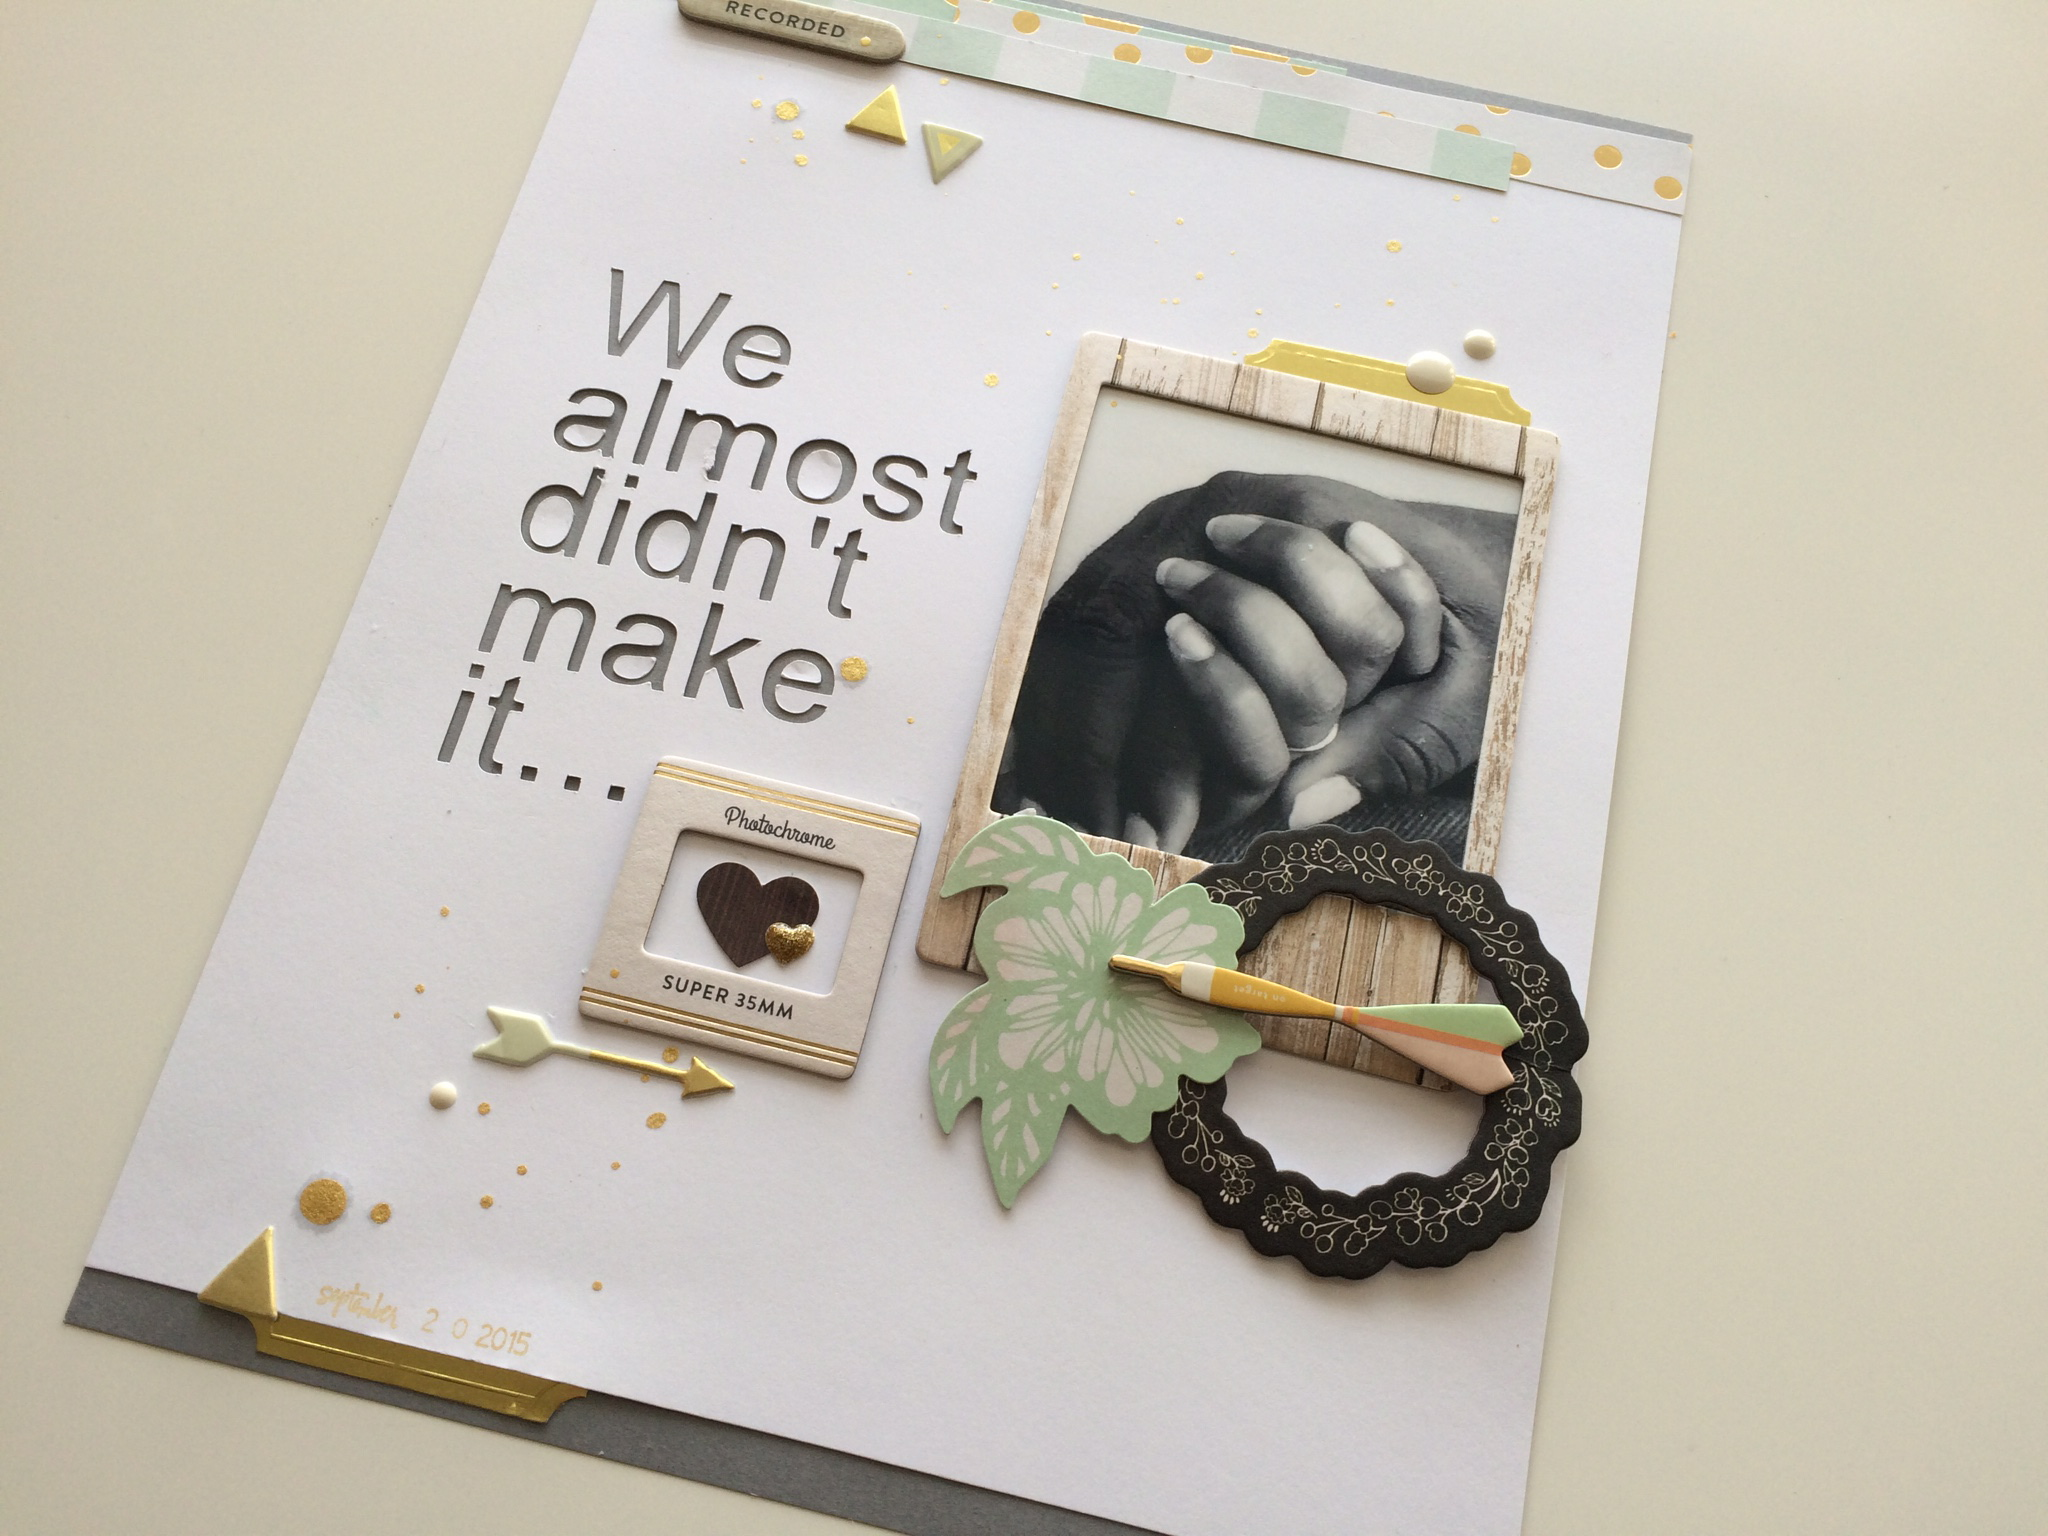 How to make scrapbook for husband - During The Summer Of 2014 My Husband Came Out As Transgender The Handsome Funny Smart Intelligent Man I Once Knew Felt Trapped Living An Existence